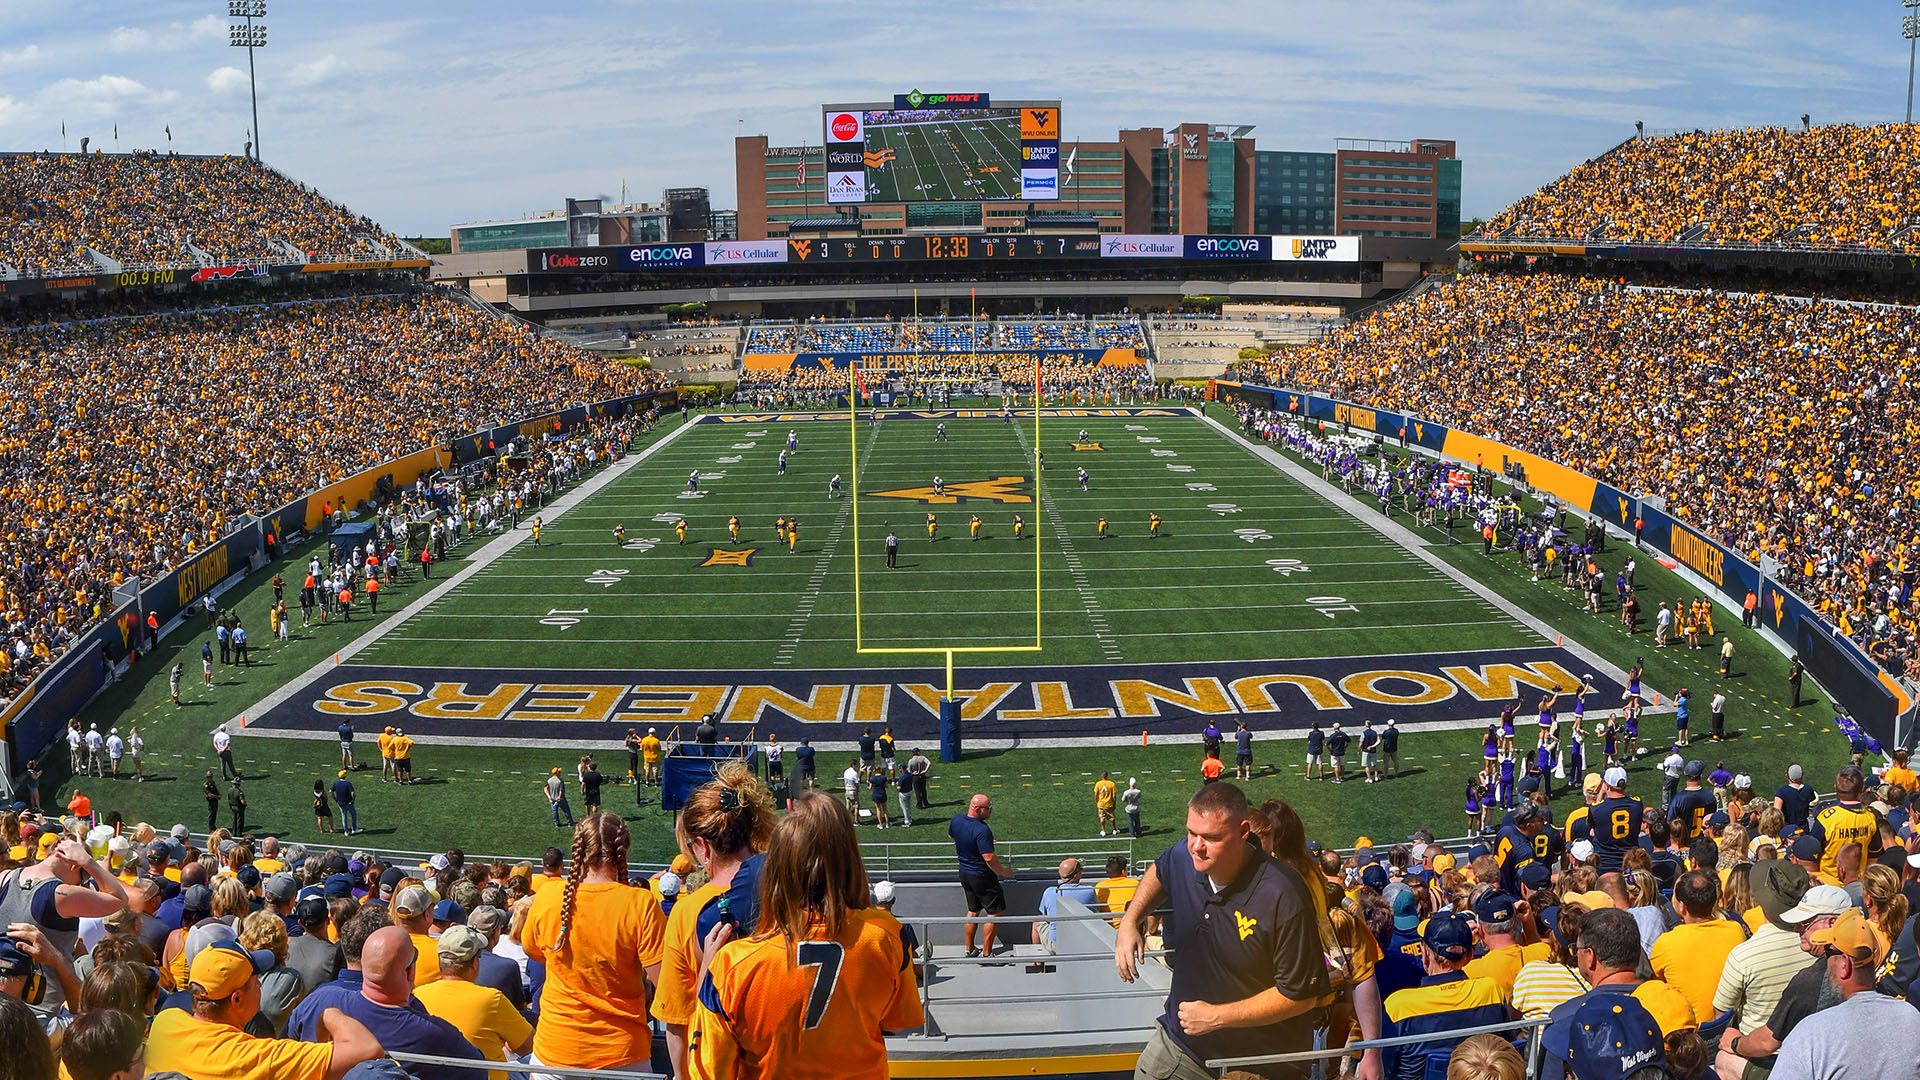 video conference backgrounds west virginia university athletics west virginia university athletics